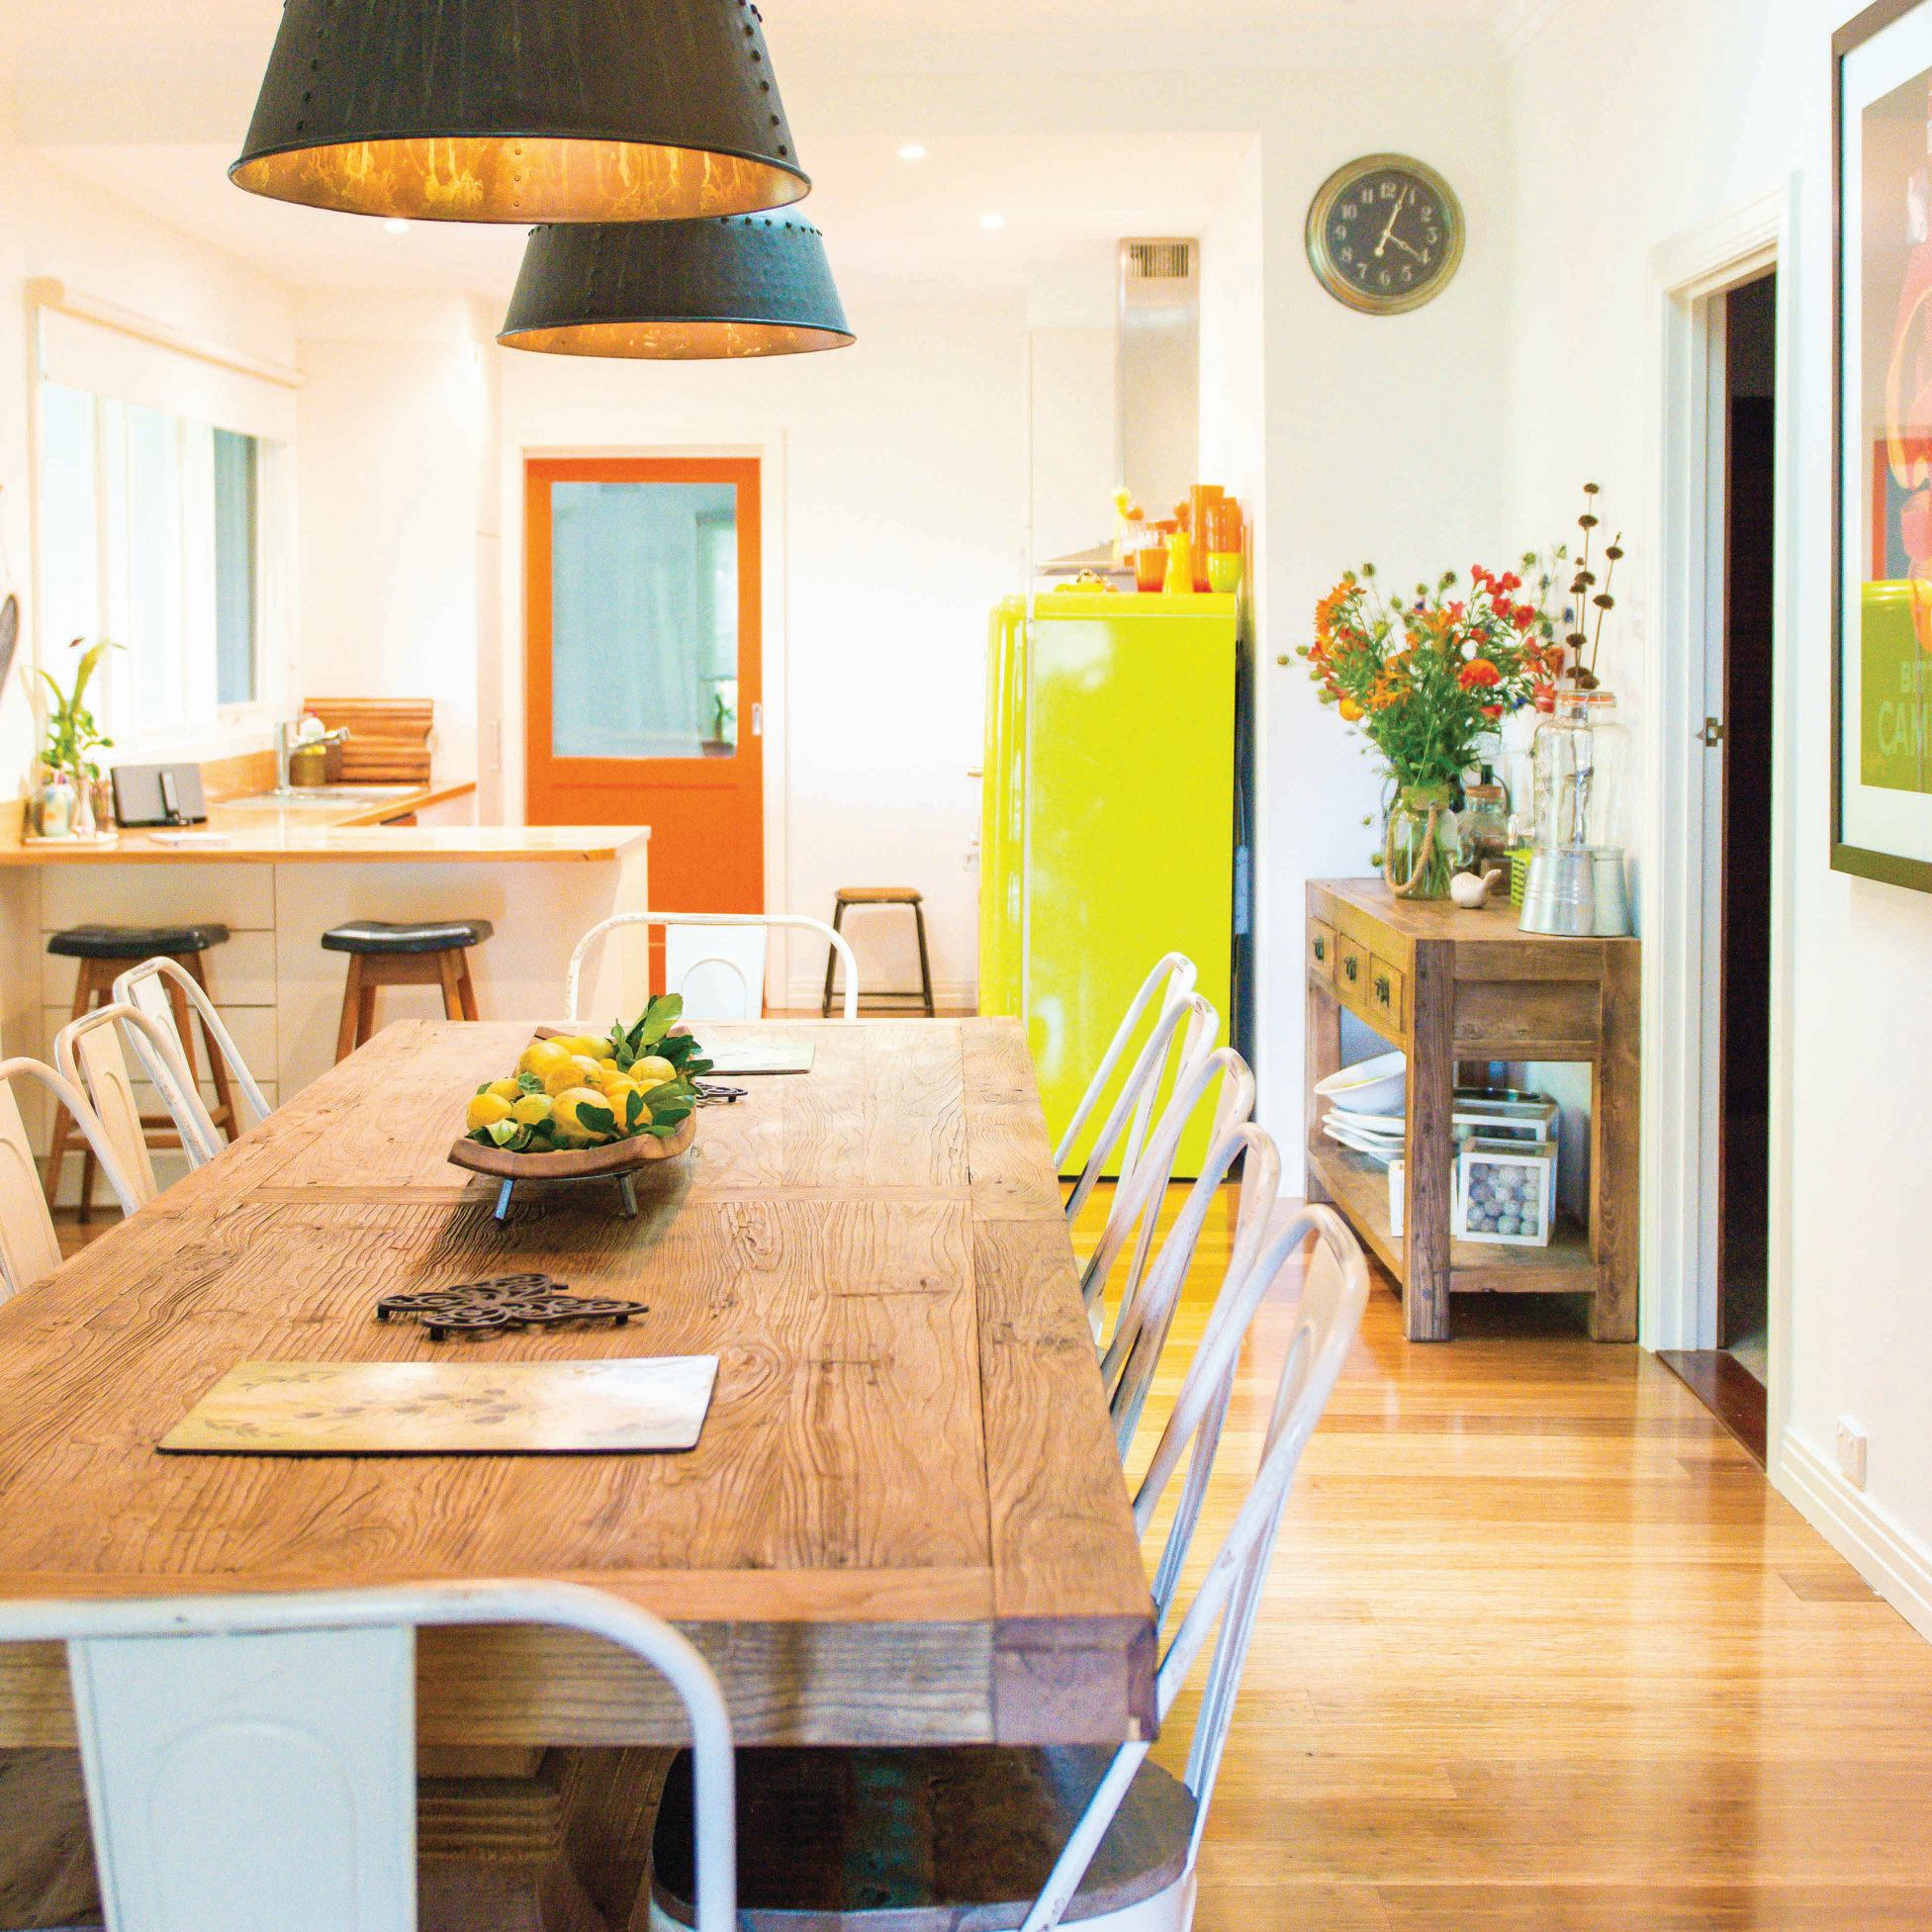 farmhouse kitchen and dining.jpg